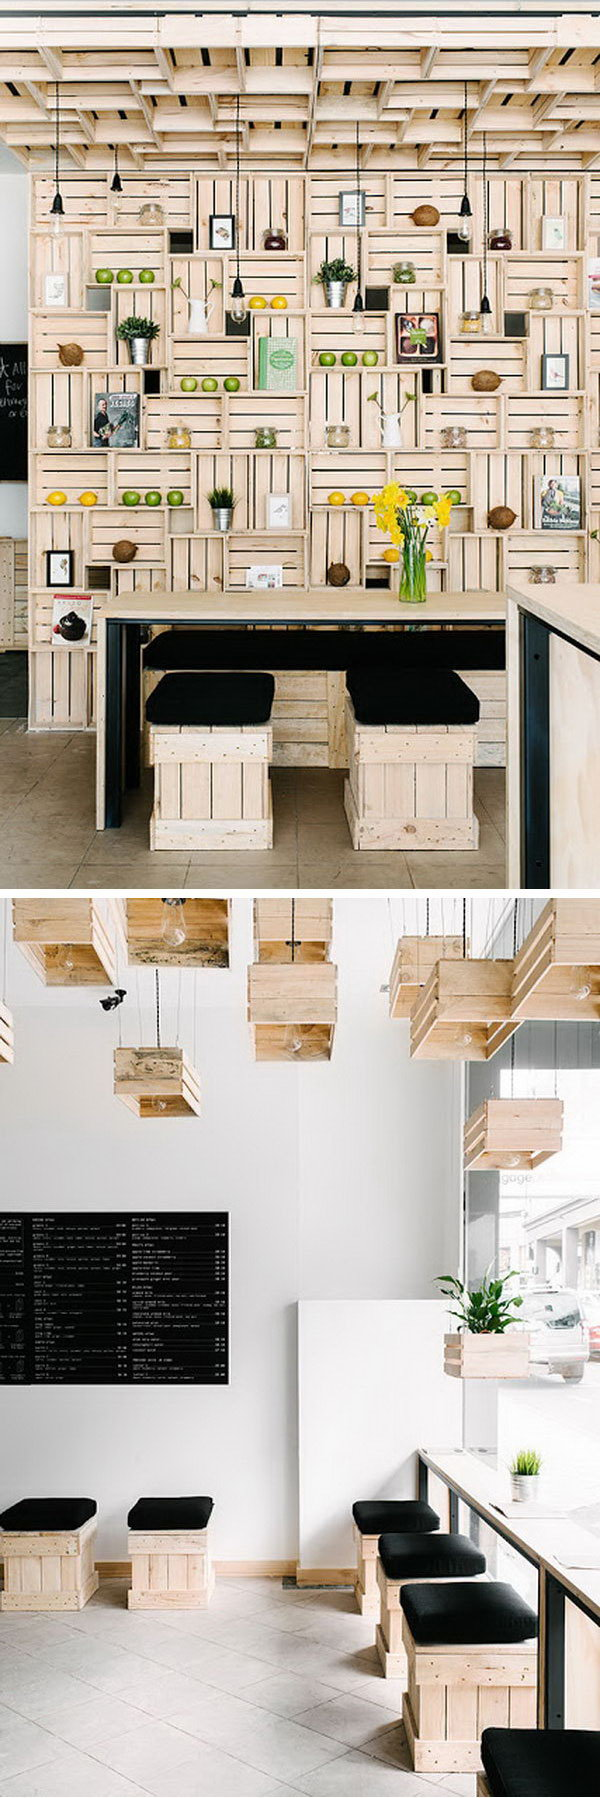 Diy Ideas With Milk Crates Or Wooden Crates Hative